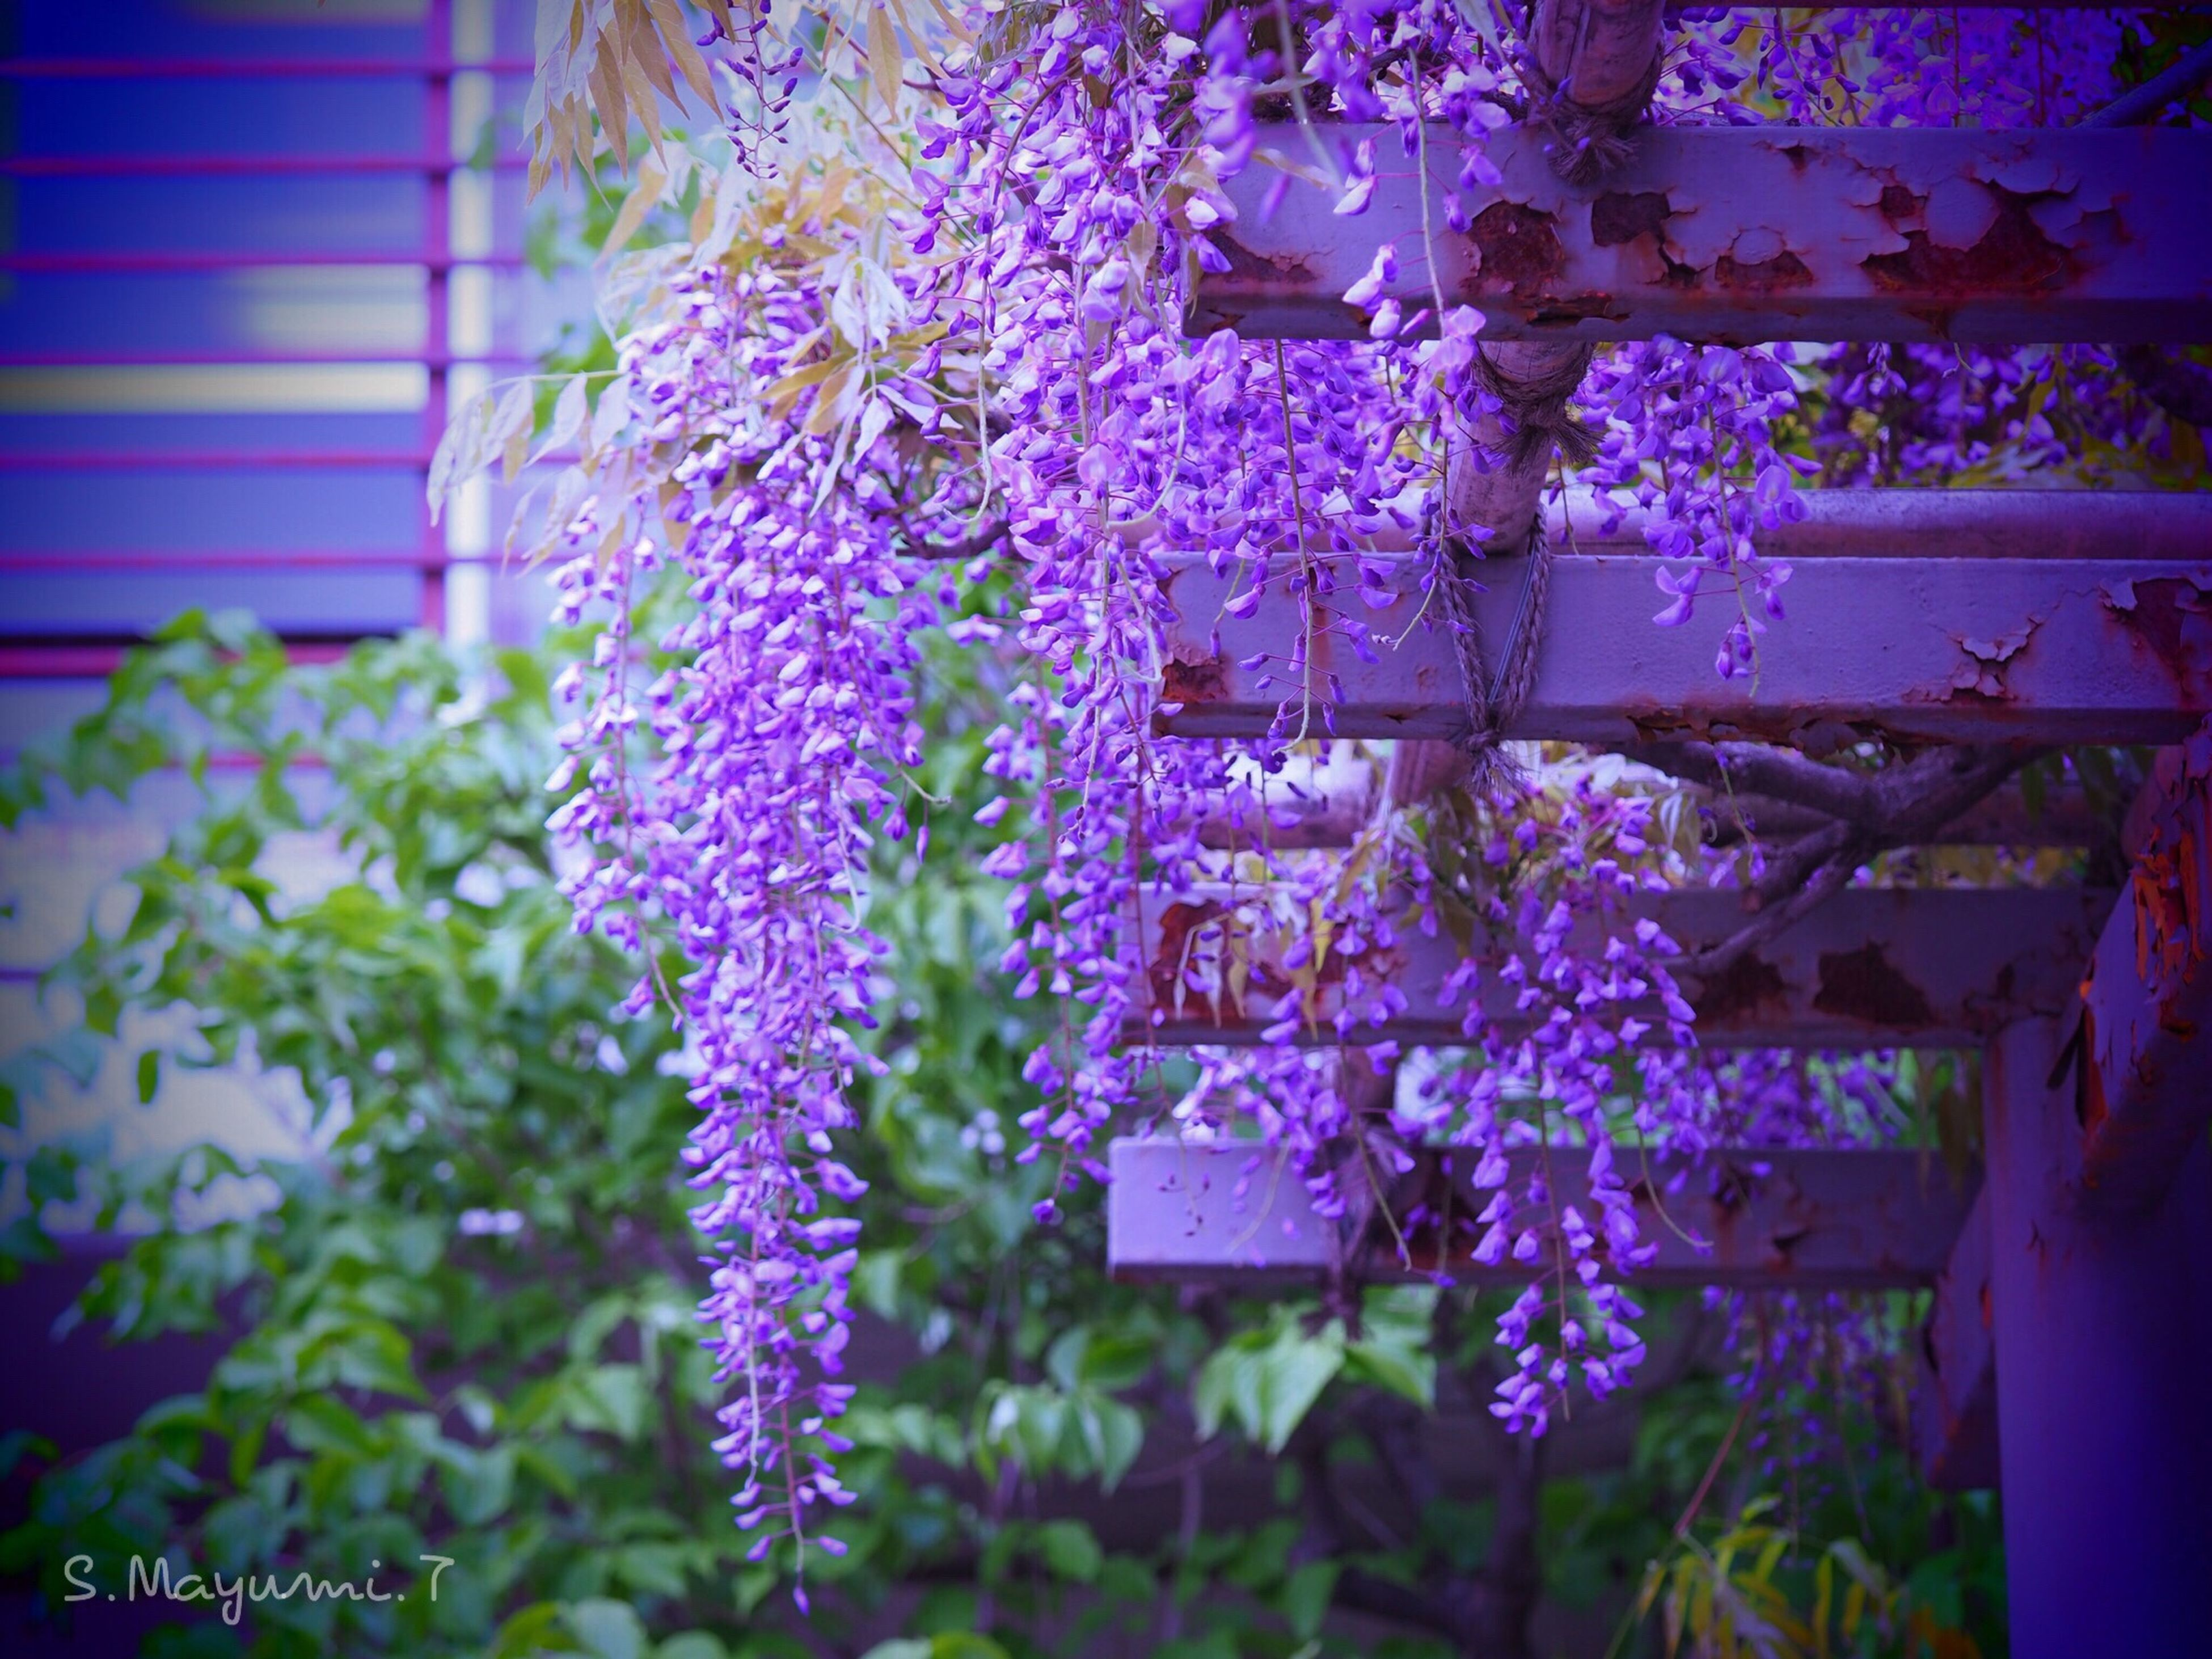 flower, wisteria, purple, focus on foreground, beauty in nature, freshness, fragility, growth, no people, close-up, day, hanging, nature, springtime, blooming, branch, tree, outdoors, flower head